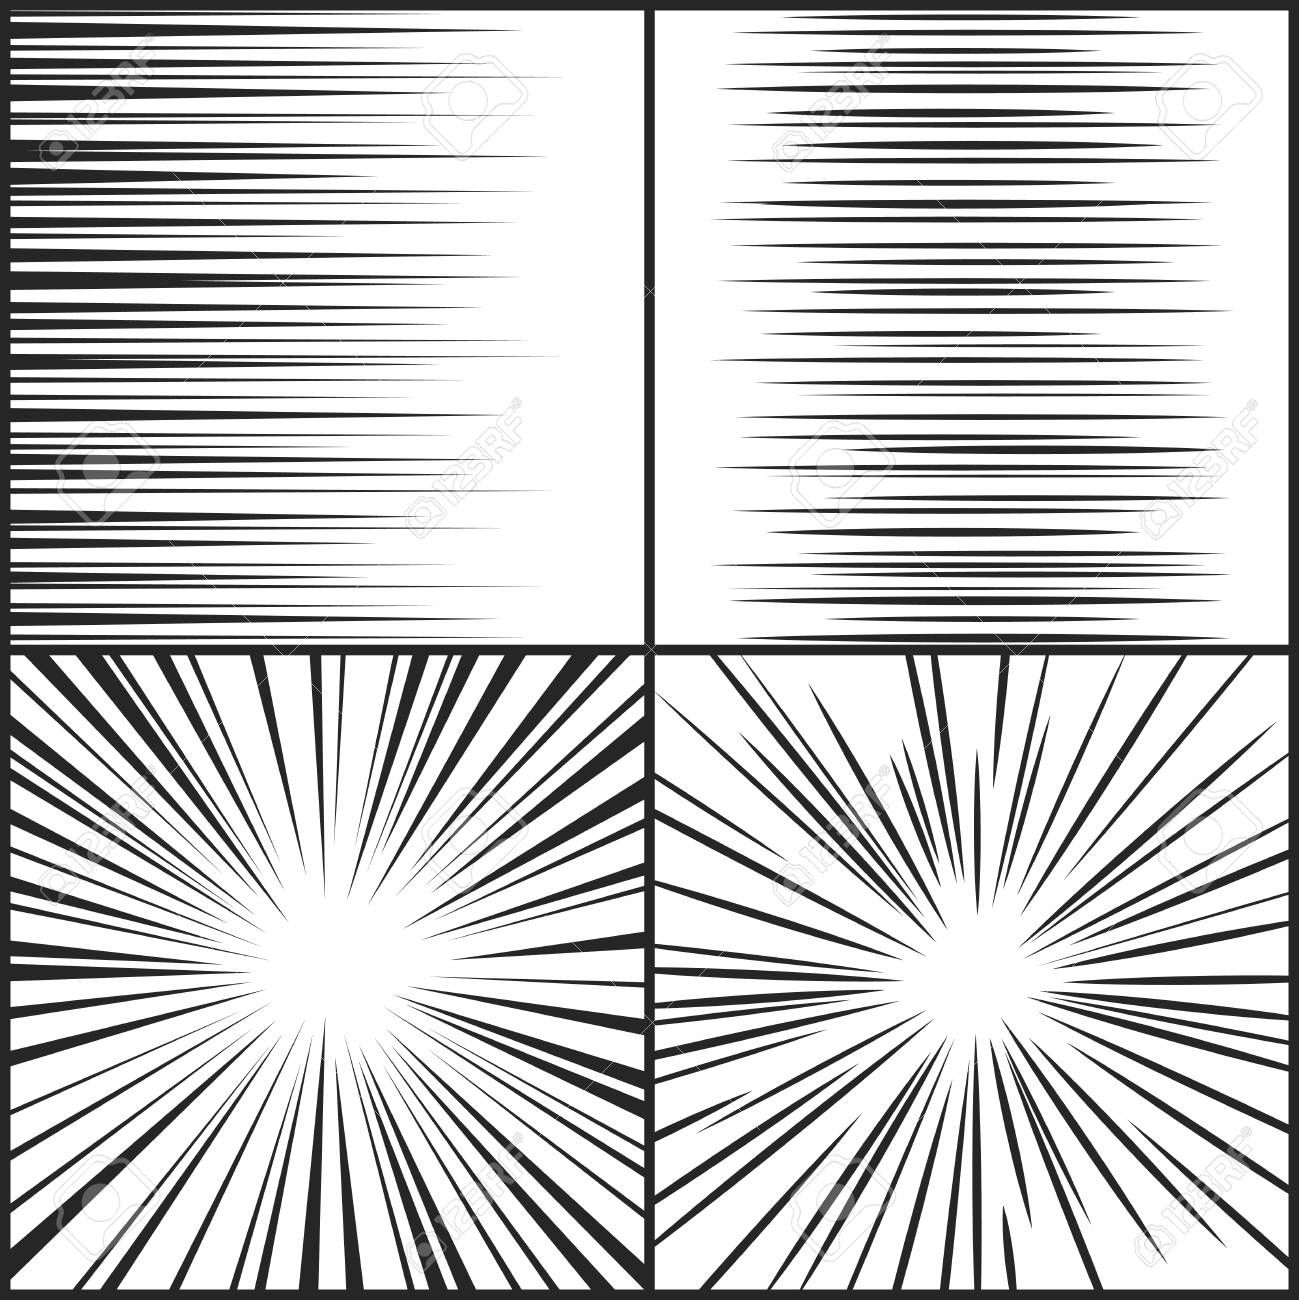 Speed Lines Motion Strip Manga Comic Horizontal And Radial Effect Vector Set Radial Abstract Speed Line From Motion Illustration Of Trame Manga Manga Dessin